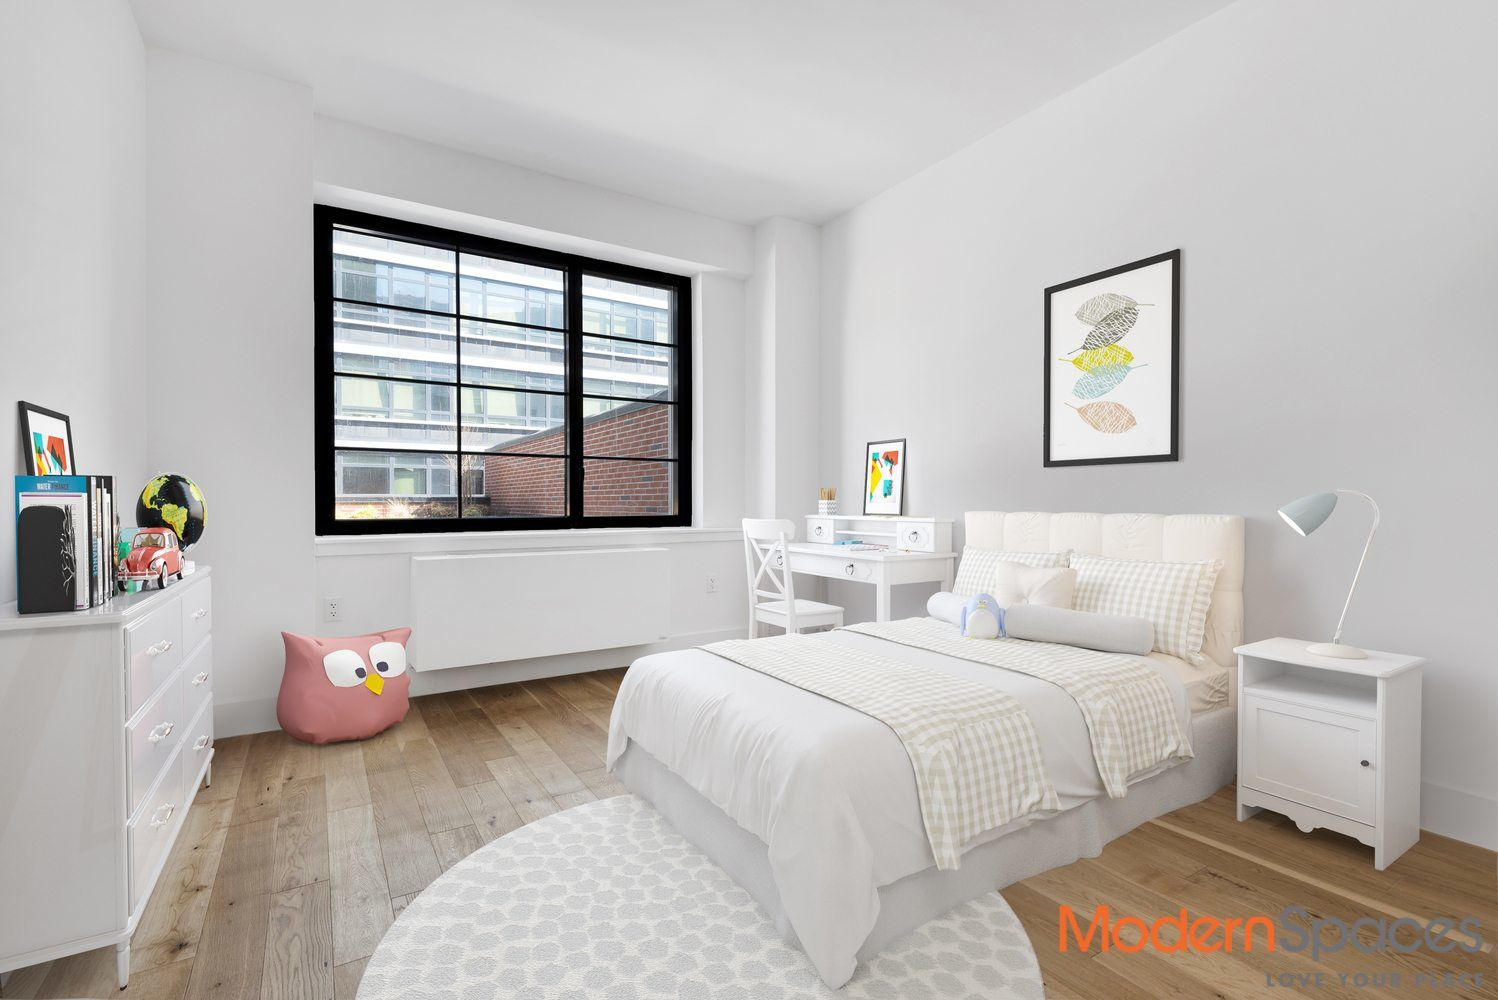 The Harrison, New To Market, 2 Bedrooms And 2 Baths Photo 5 - MODERNSPACESNYC-139631